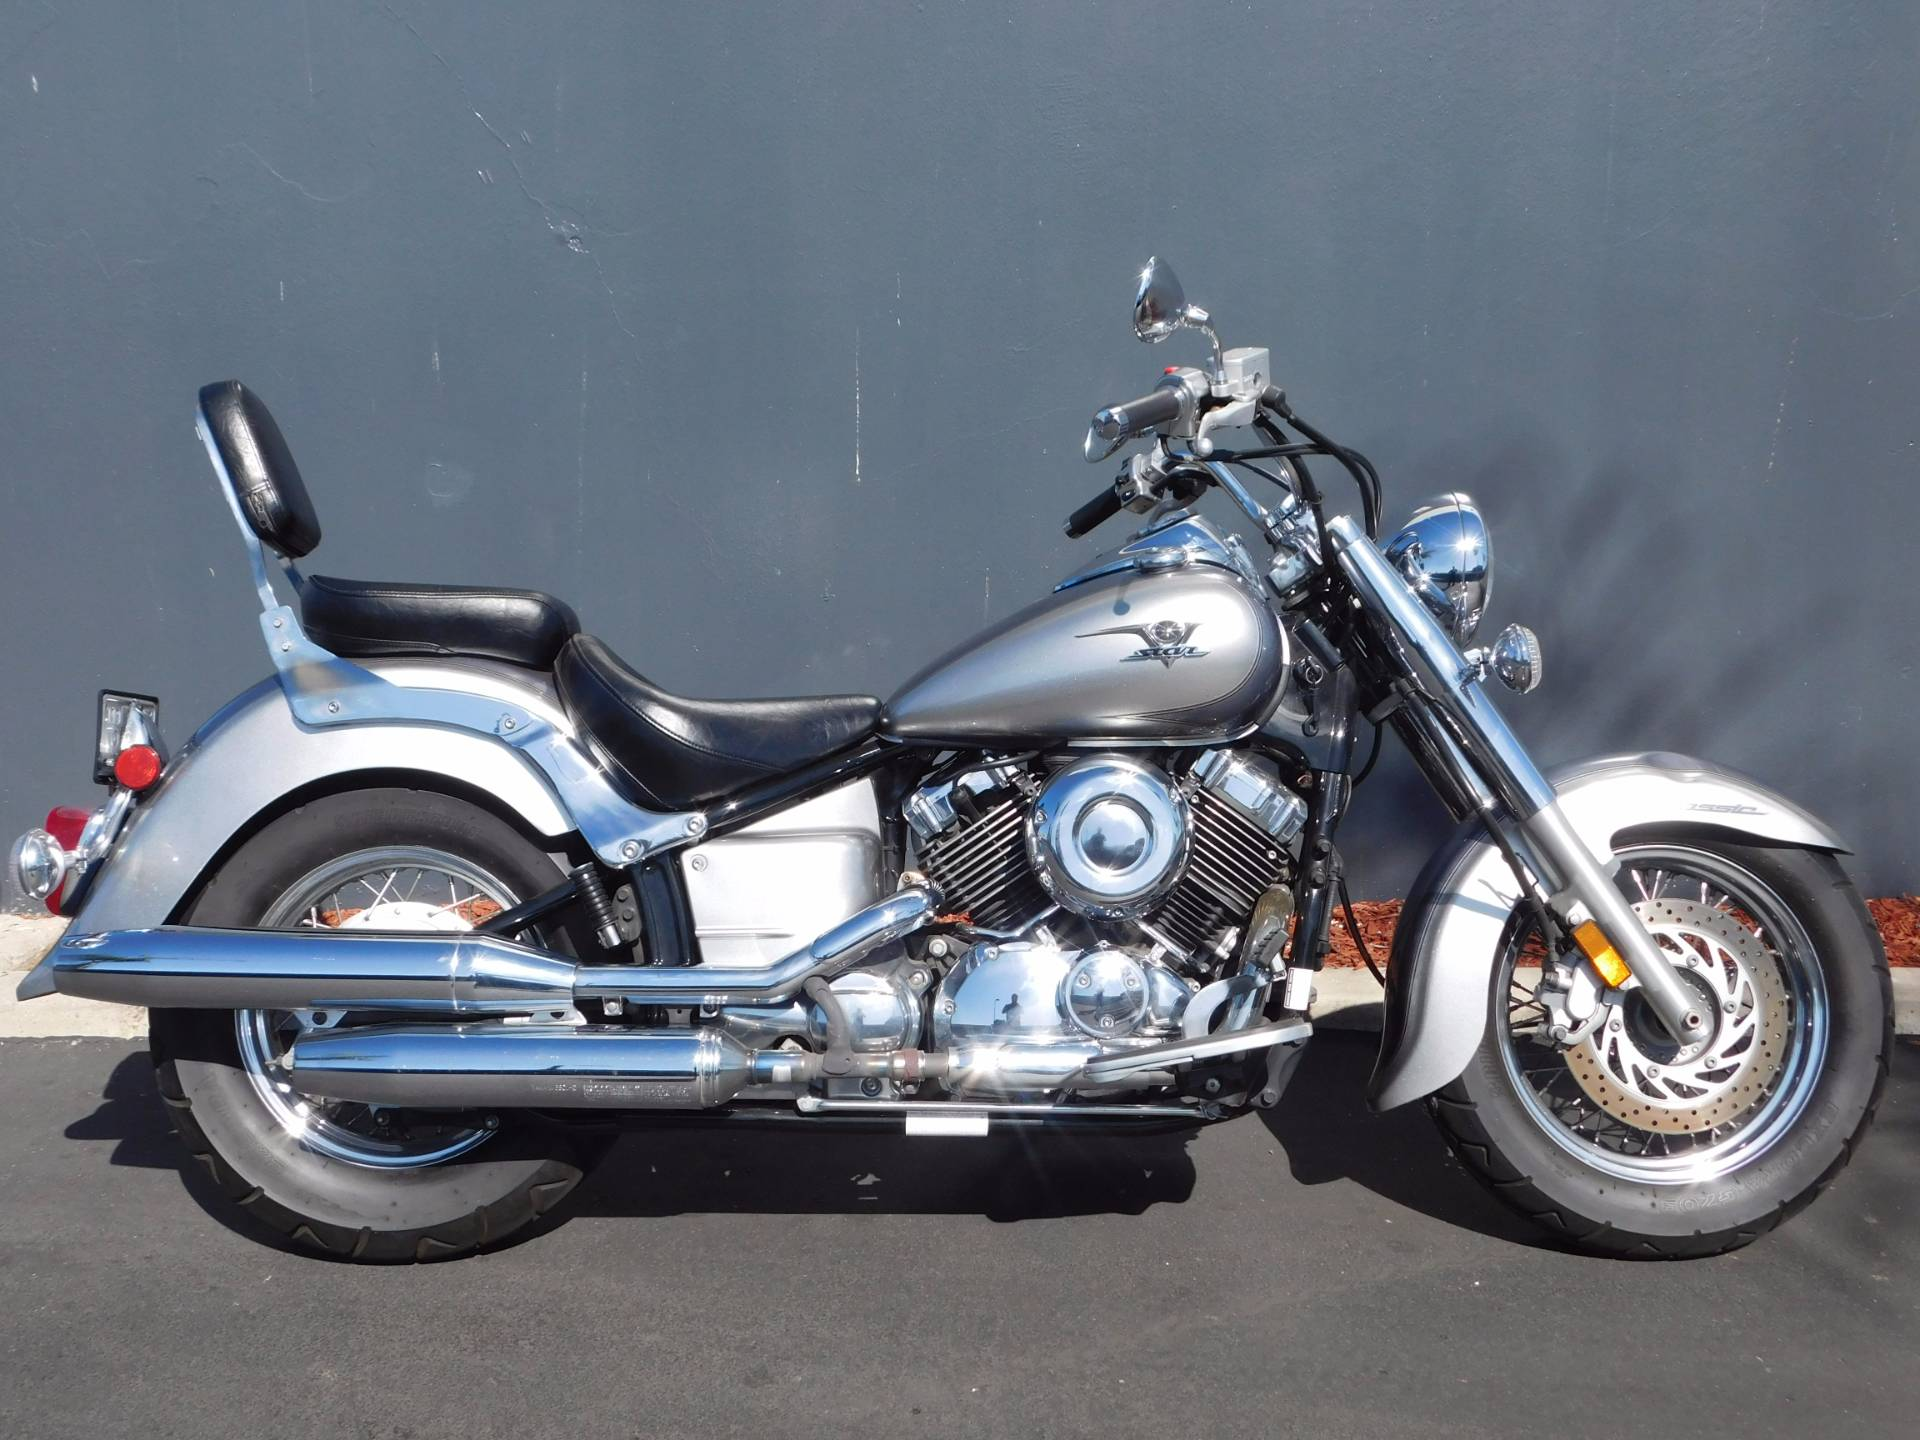 Used 2009 Yamaha V Star 650 Classic Motorcycles in Chula Vista, CA ...